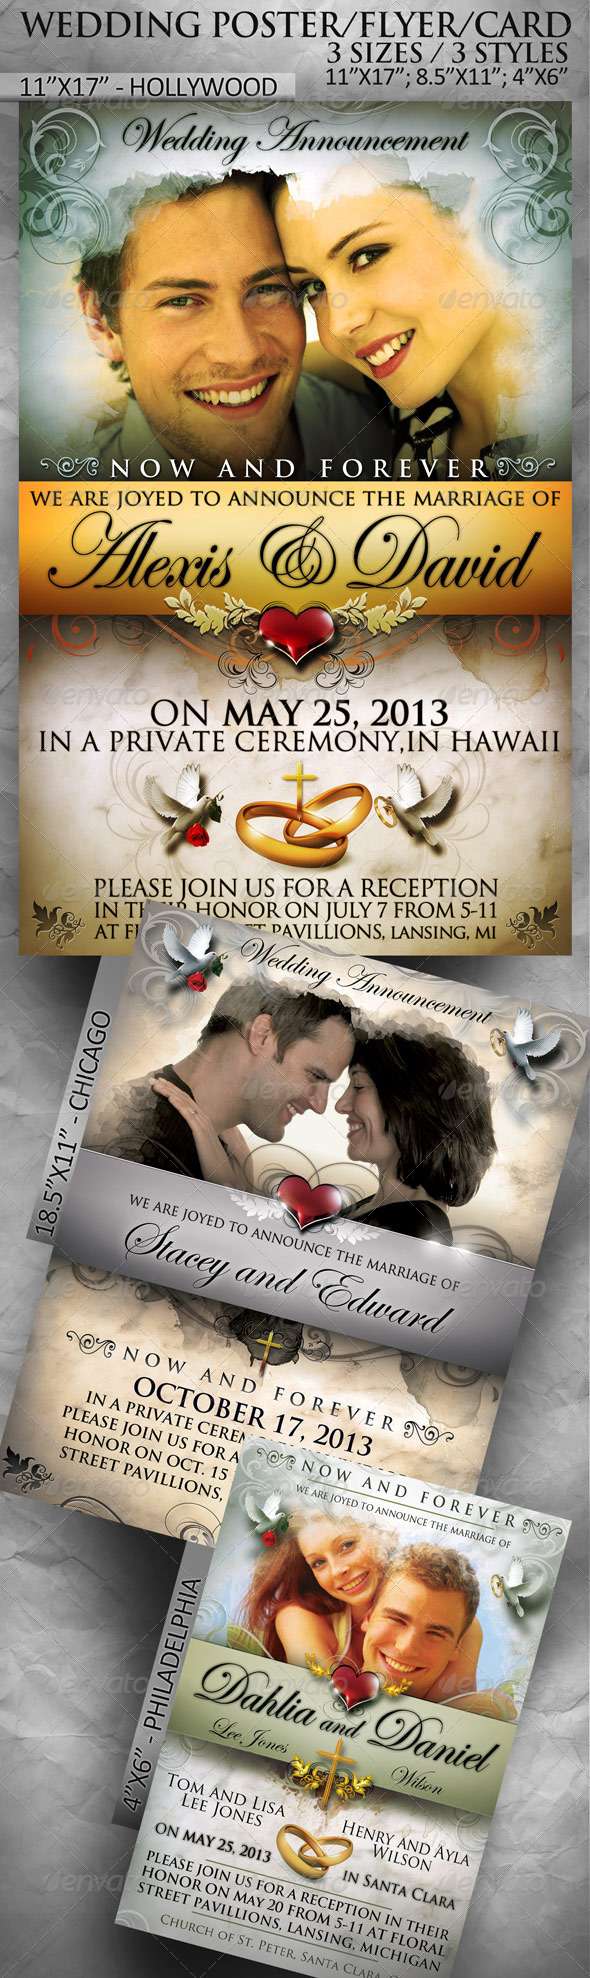 GraphicRiver Wedding Poster Flyer Card in 3 sizes 1803024